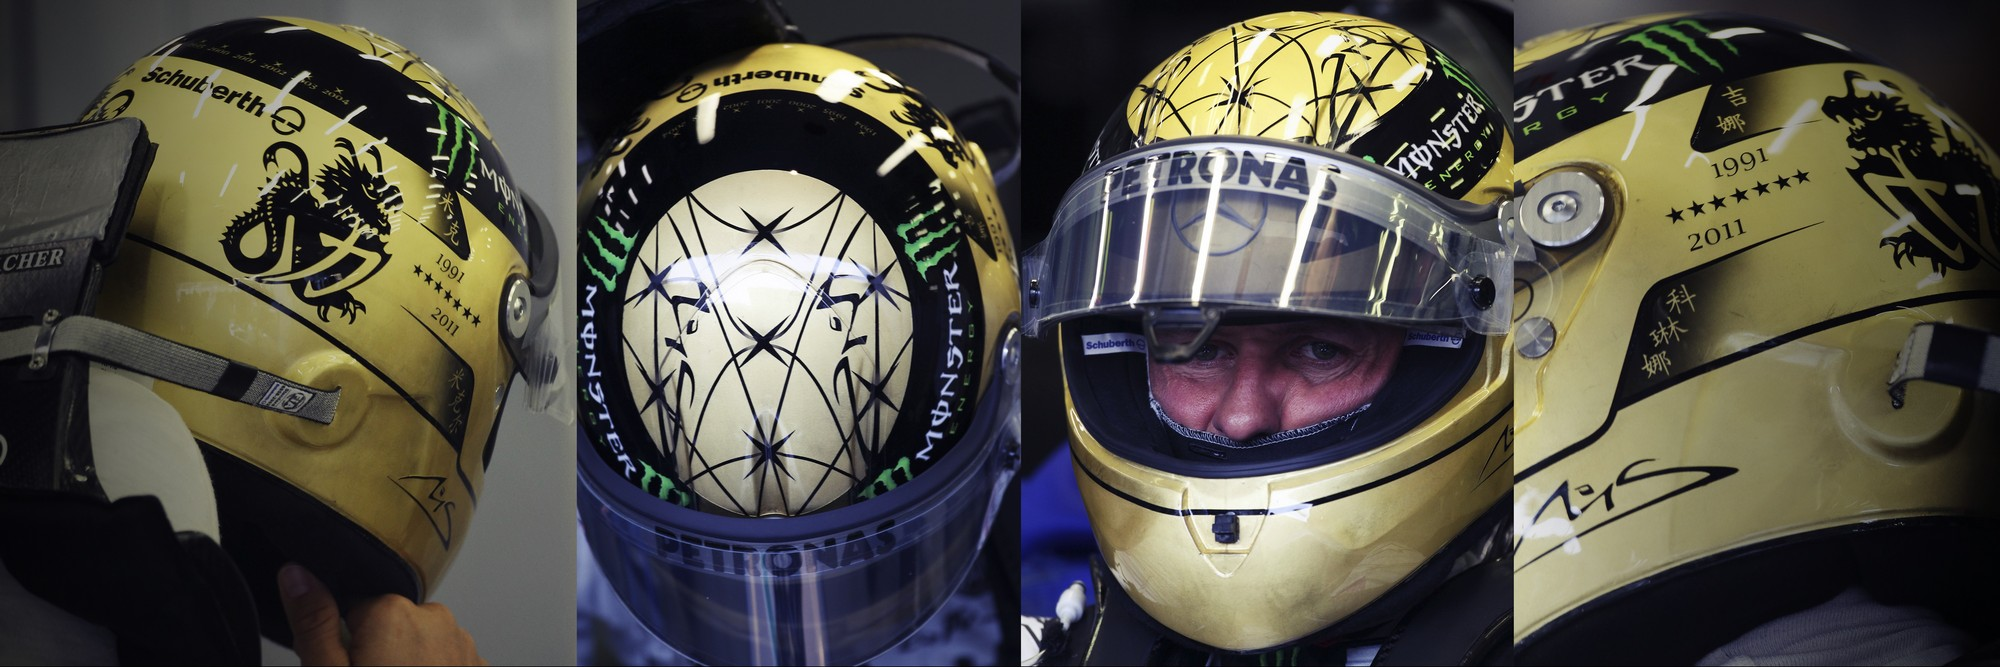 Шлем Михаэля Шумахера на Гран-При Бельгии 2011 года | 2011 Belgian Grand Prix helmet of Michael Schumacher